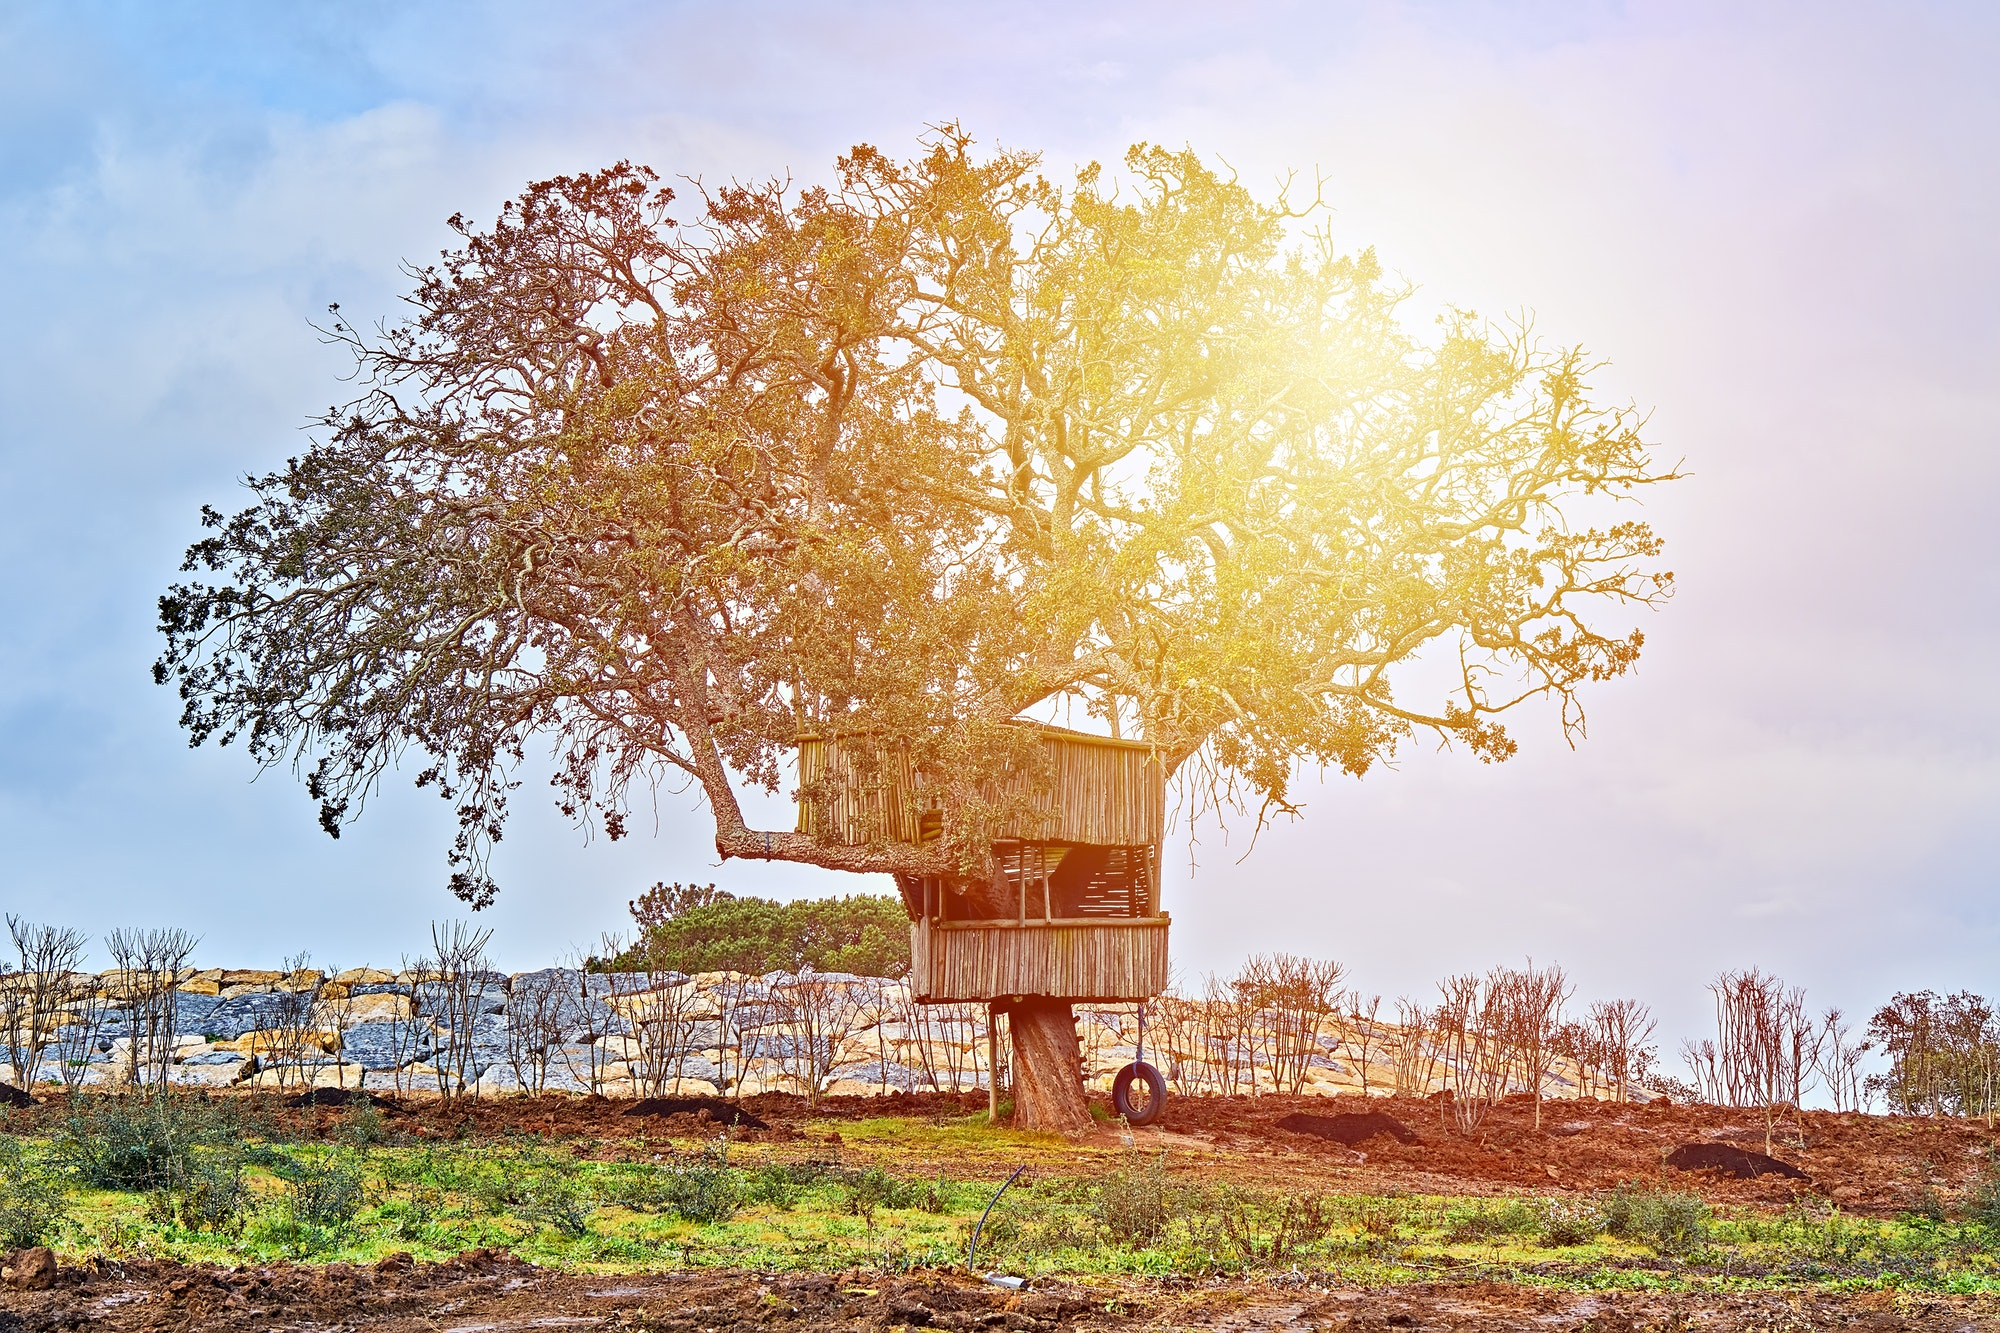 Tree and small treehouse in backyard against blue sky. Happy childhood in countryside concept